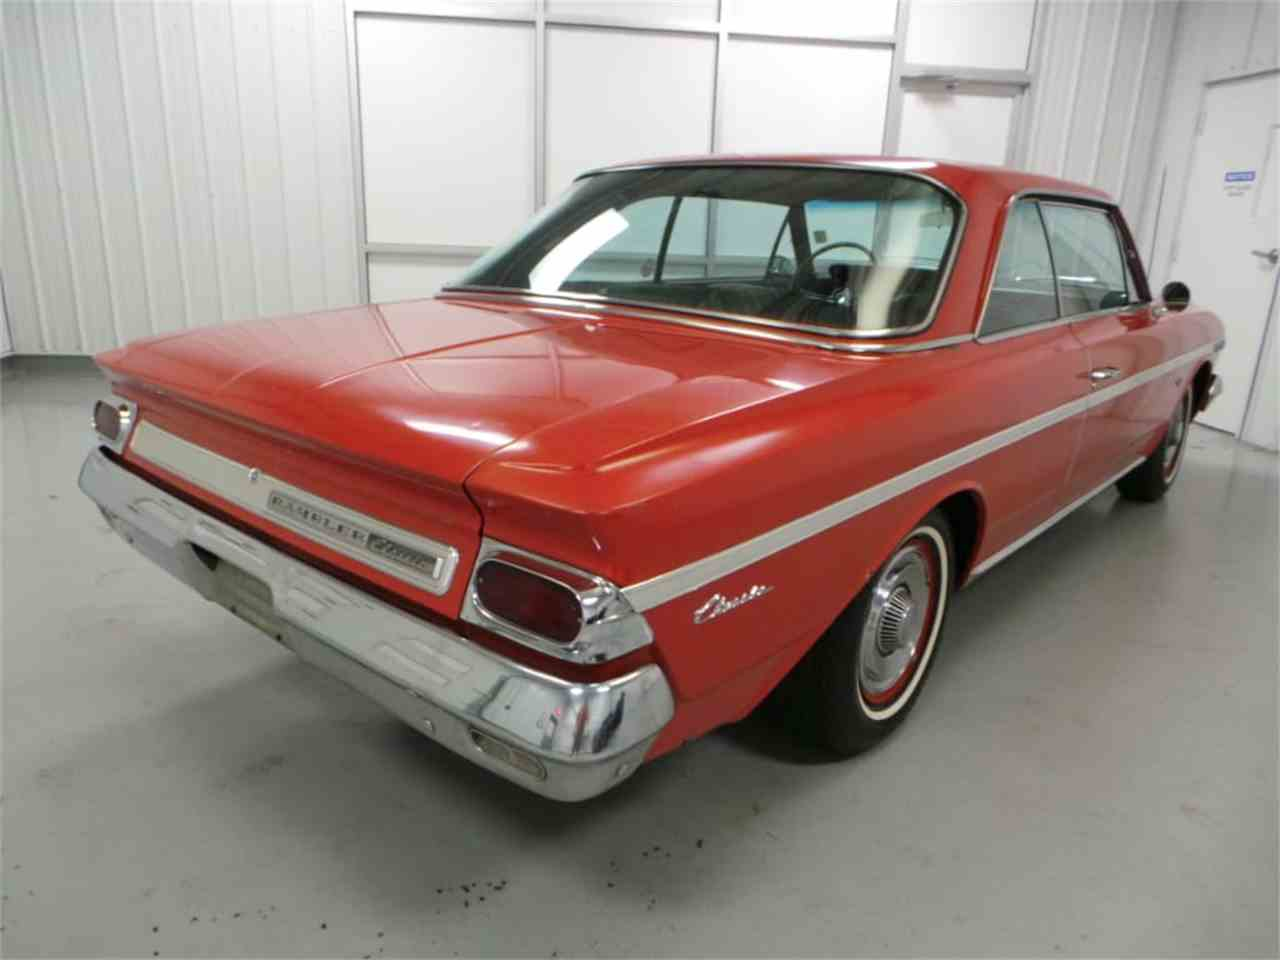 Large Picture of Classic '64 AMC Rambler - $7,993.00 Offered by Duncan Imports & Classic Cars - JLAX